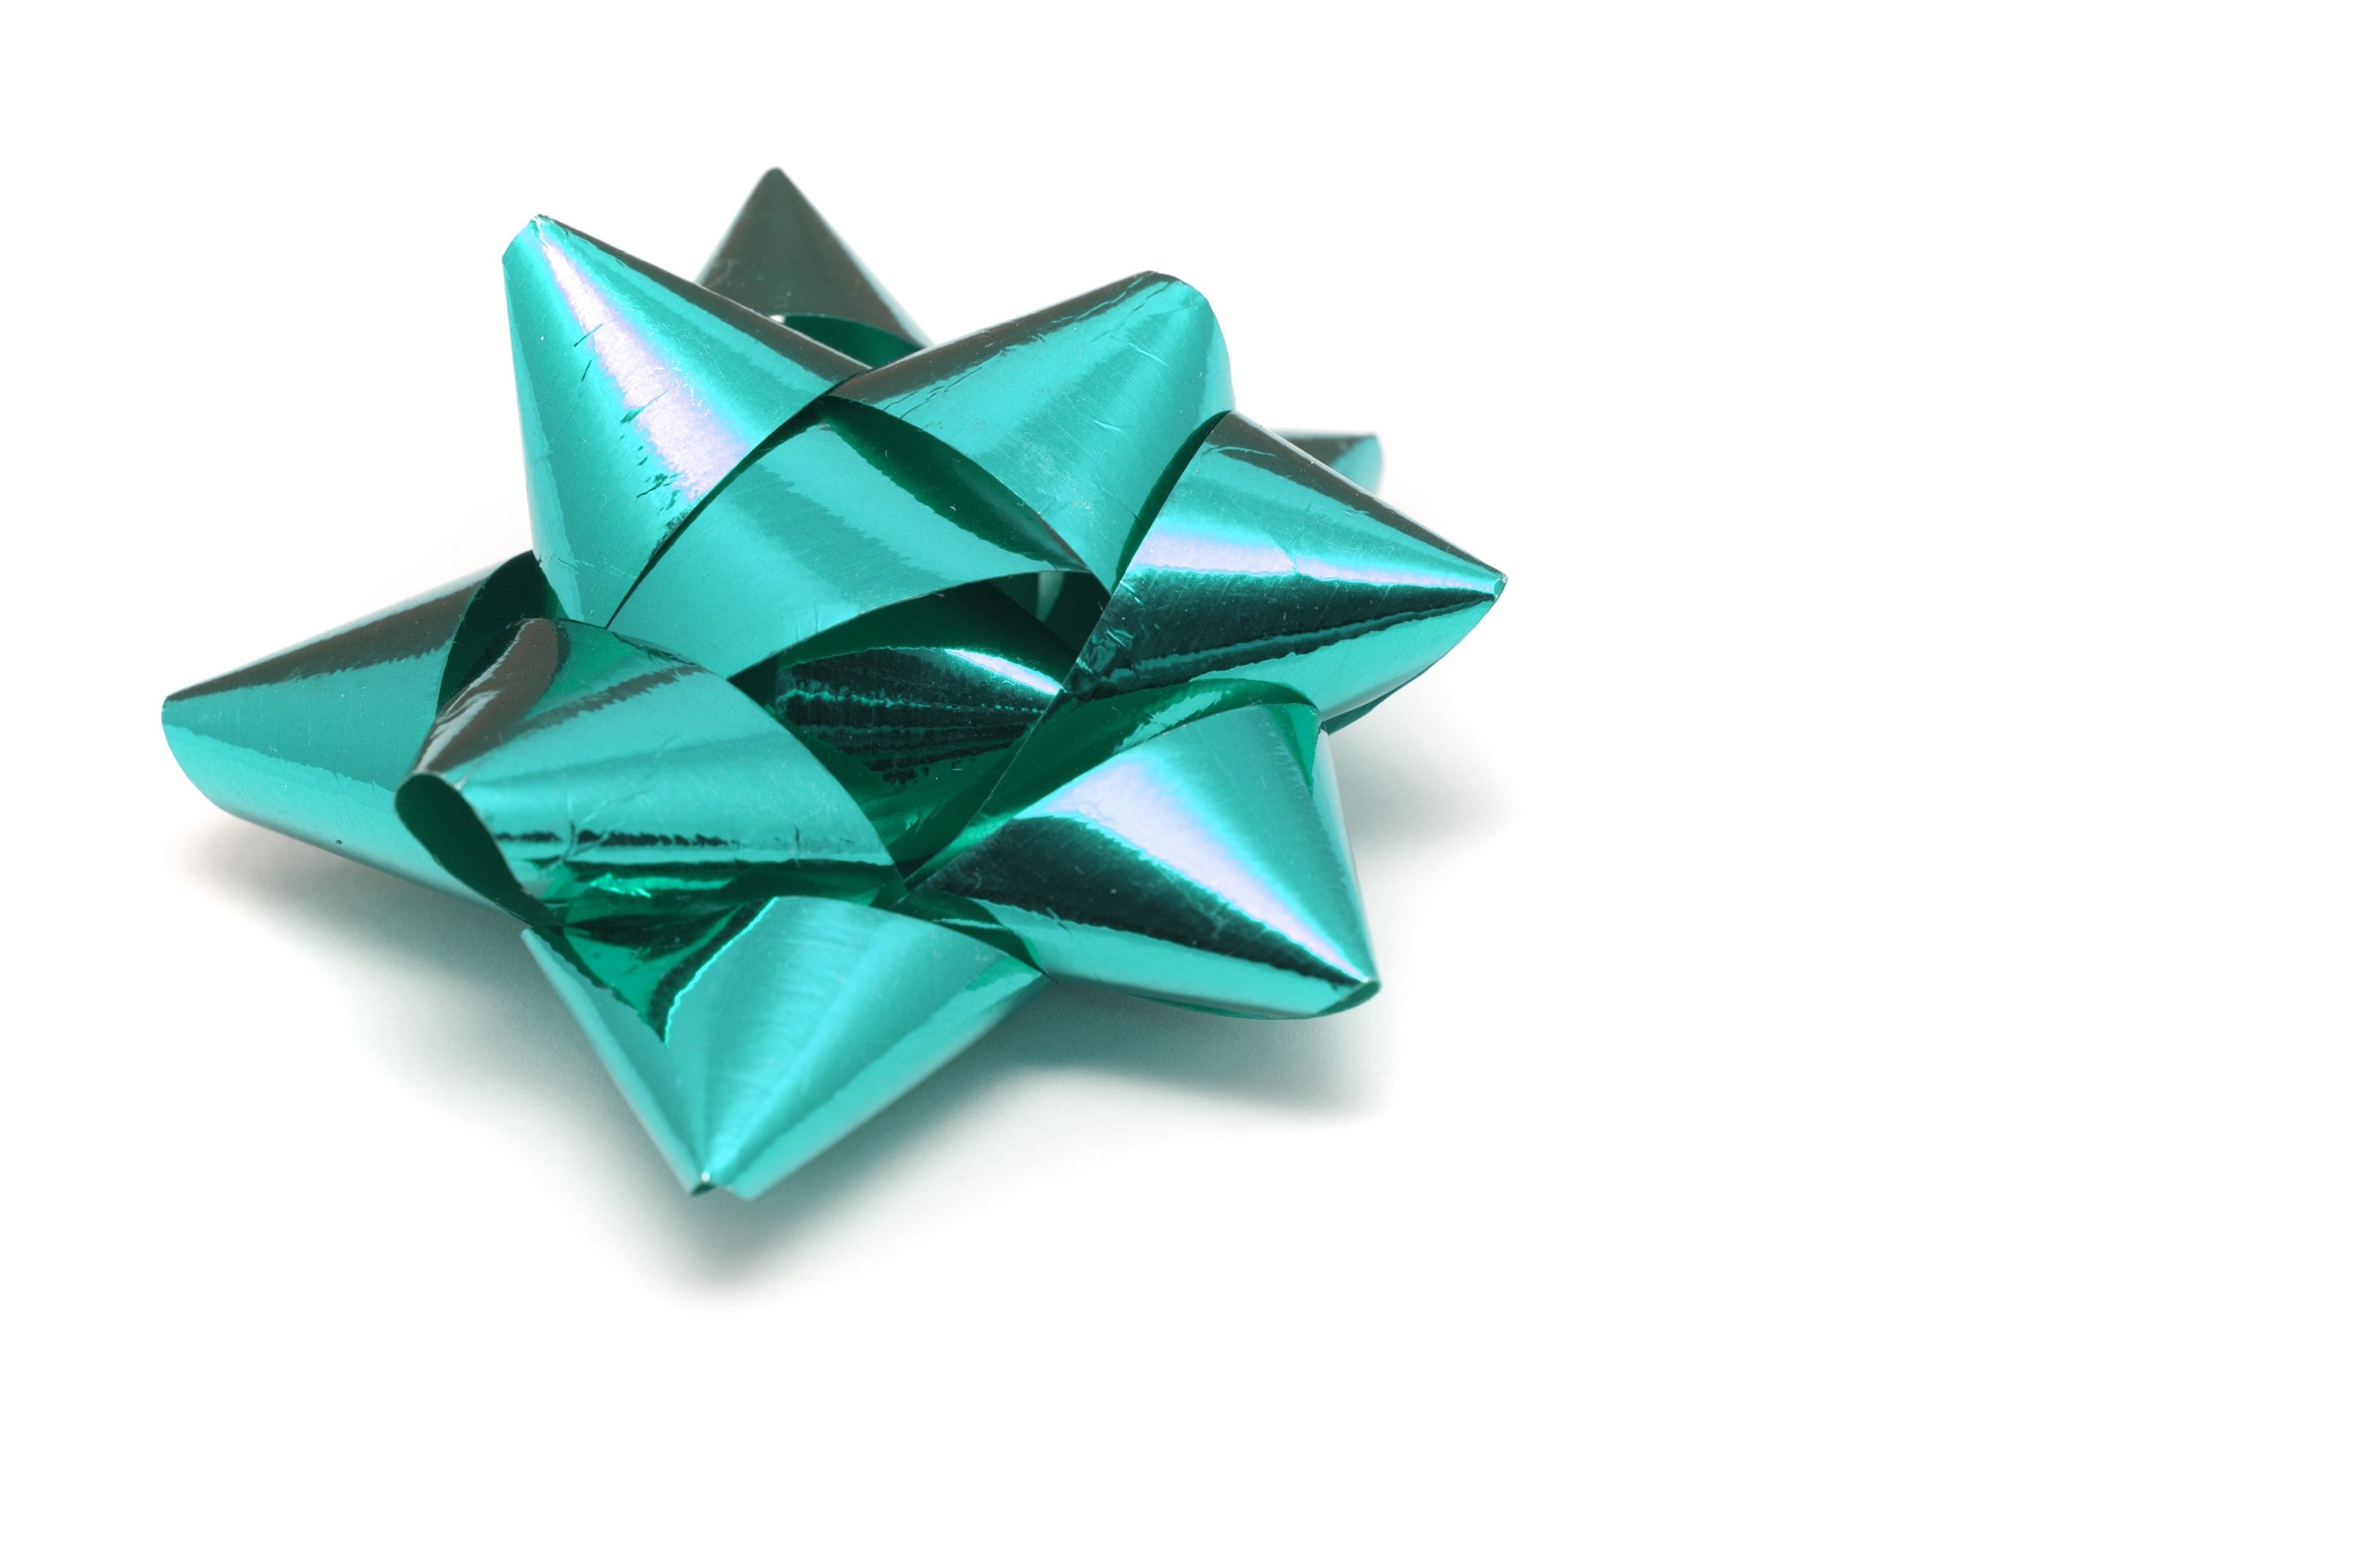 Photo of ornate cyan bow for gift wrapping free christmas images ornate cyan bow made from metallic foil ribbon for gift wrapping and decorating seasonal and christmas negle Images